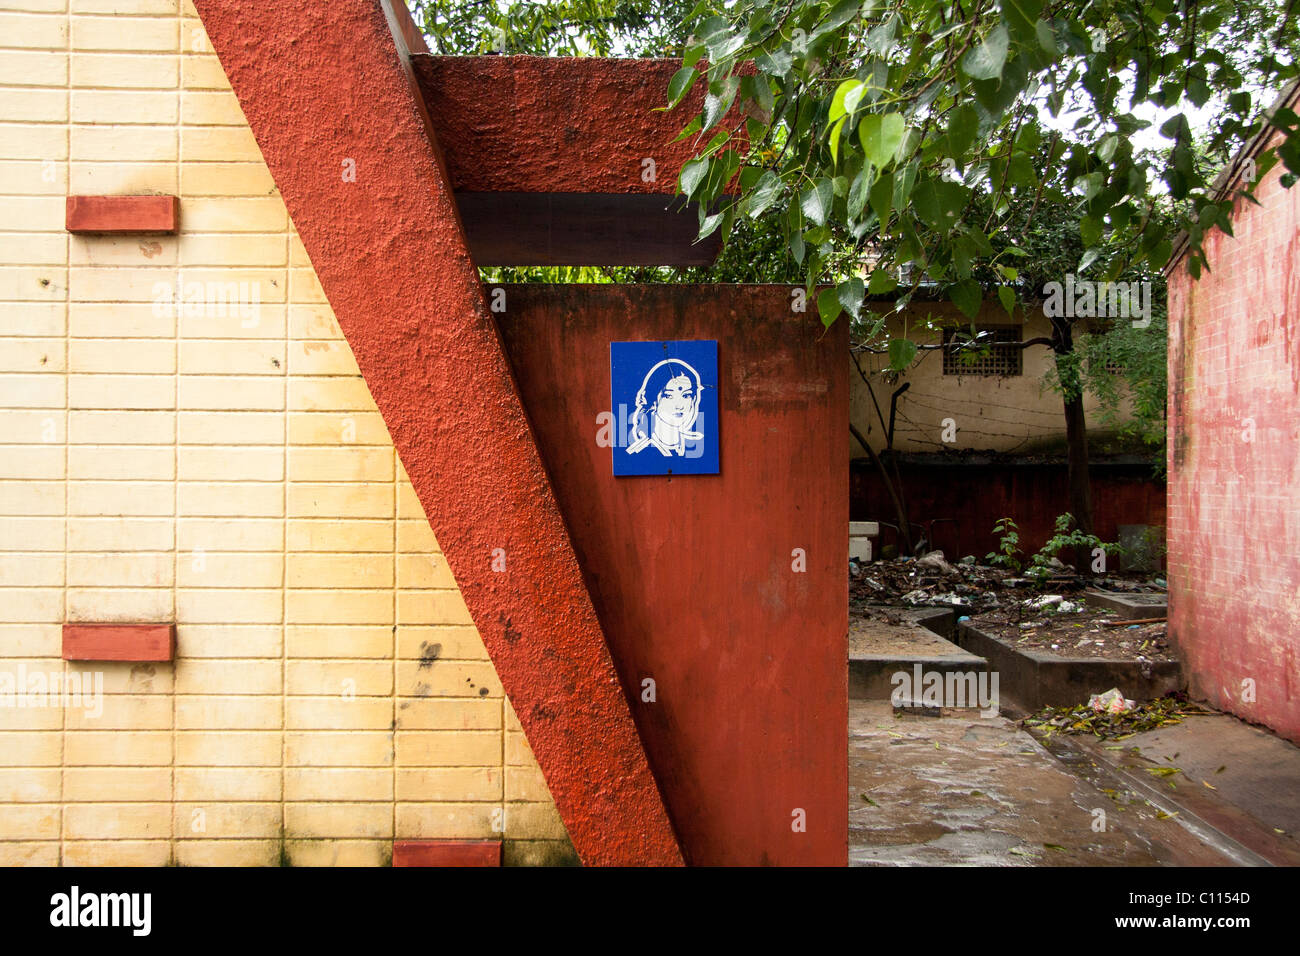 Blue women toilette sign on a red wall surrounded by  trees - Stock Image